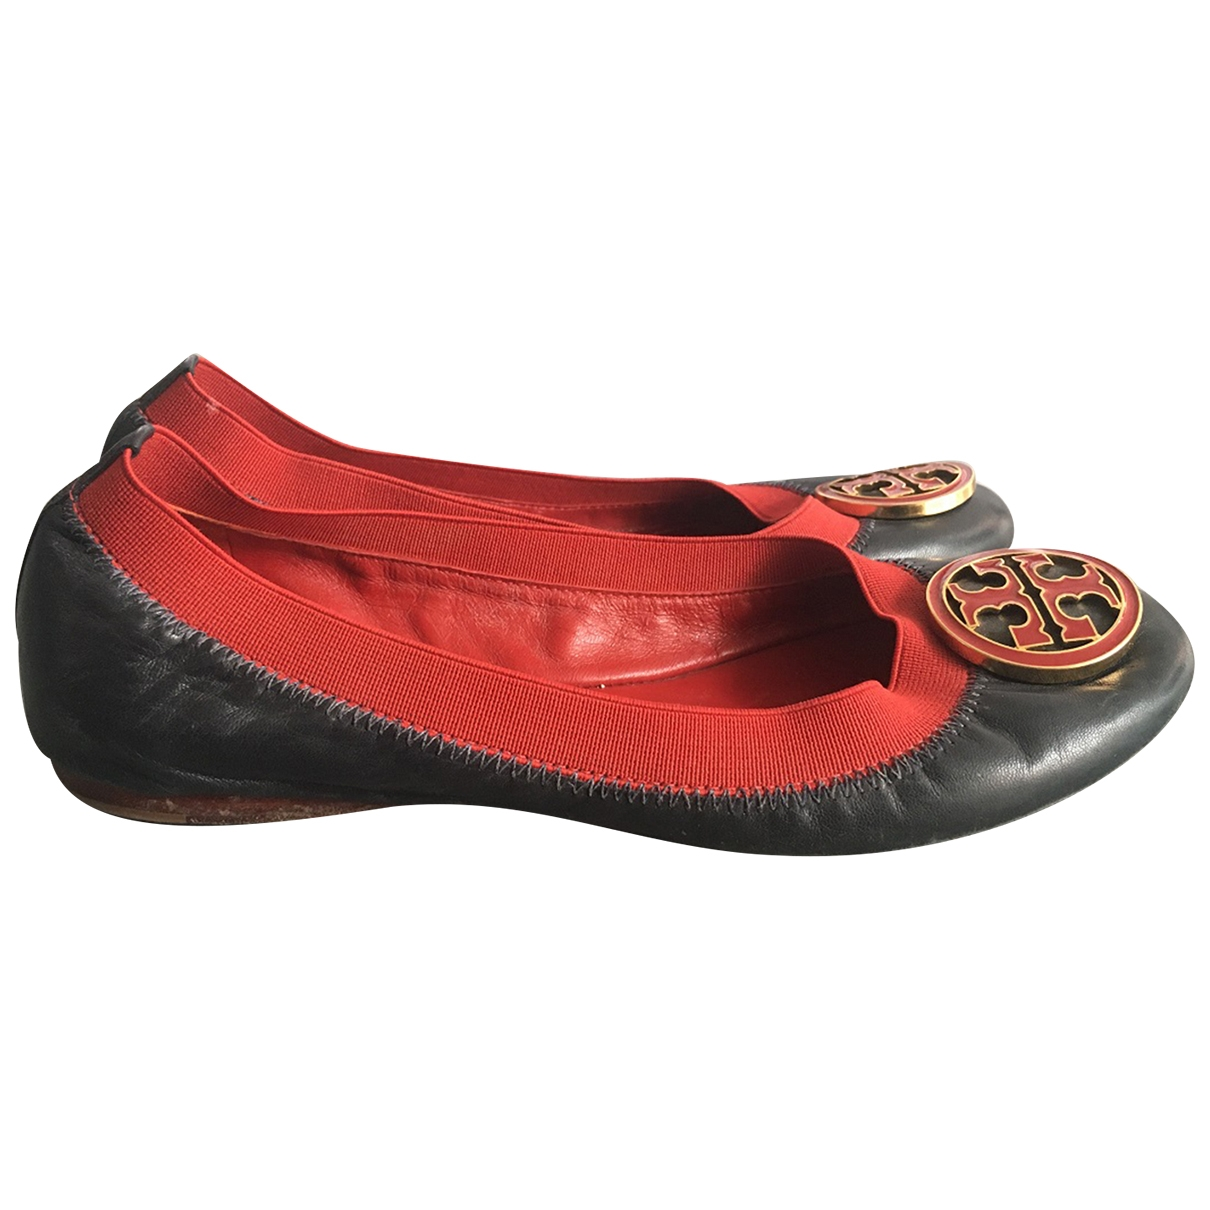 Tory Burch \N Multicolour Leather Ballet flats for Women 5 US